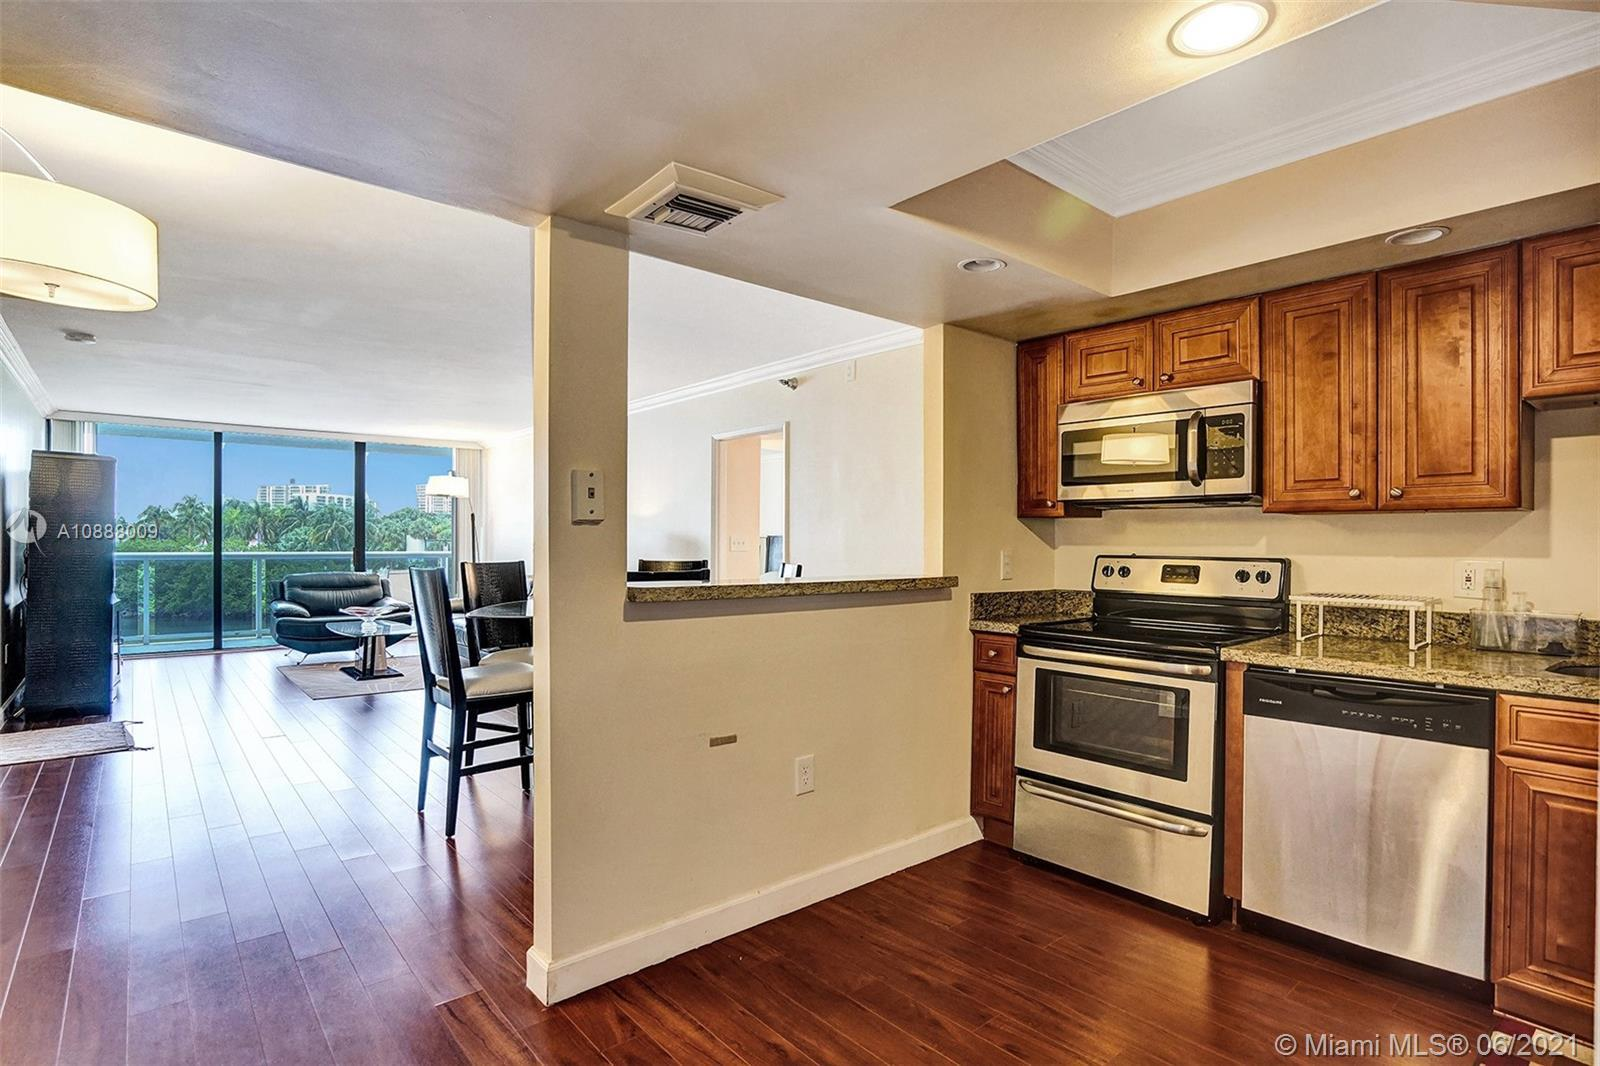 Beautiful two bedrooms, two bathroom renovated unit in the heart of Aventura. This unit has a southe